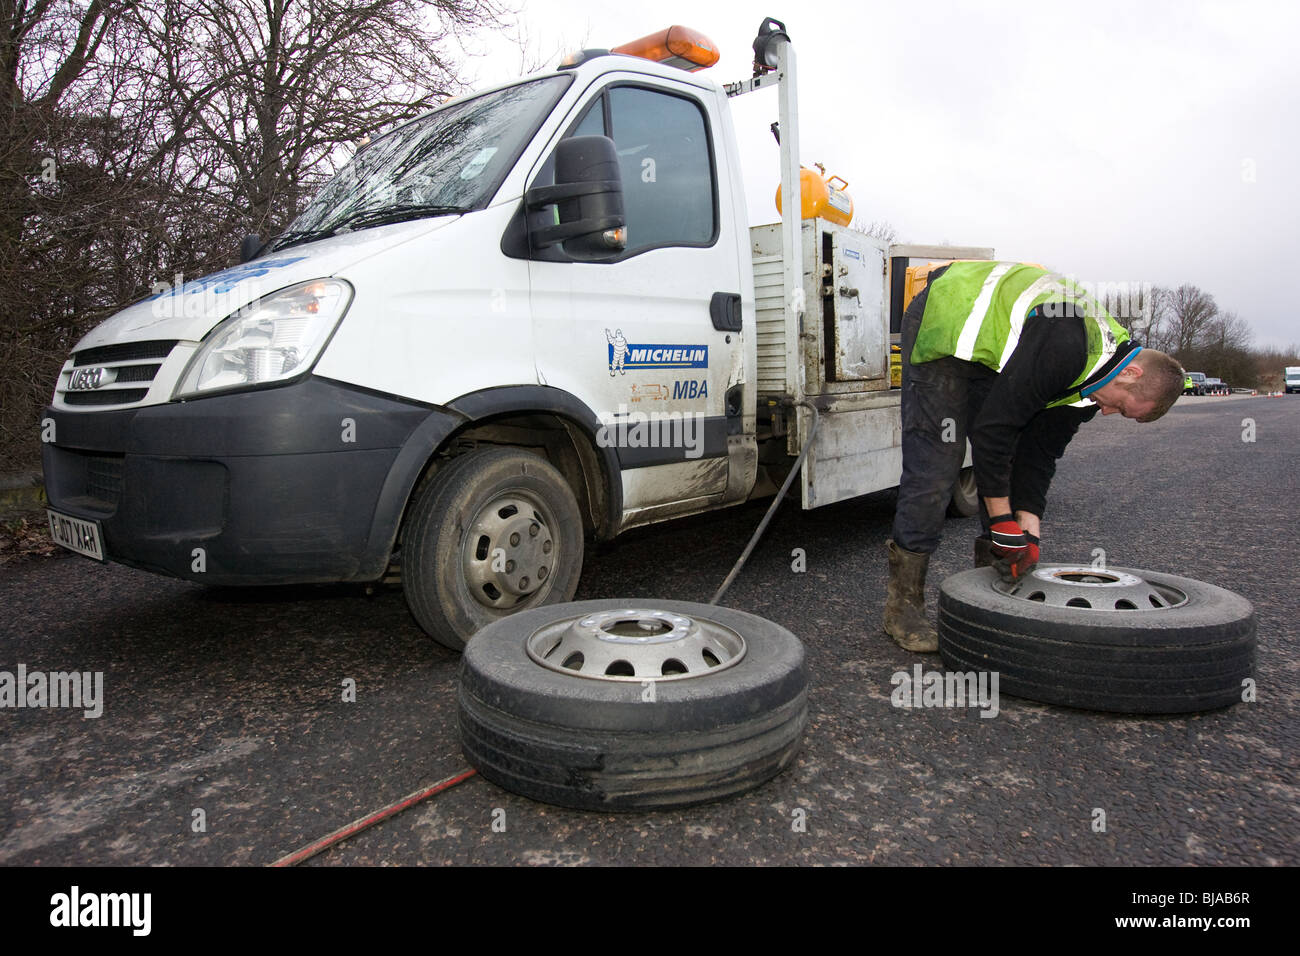 A Tyre Fitter working  on a lorry  wheel being changed at the roadside - Stock Image